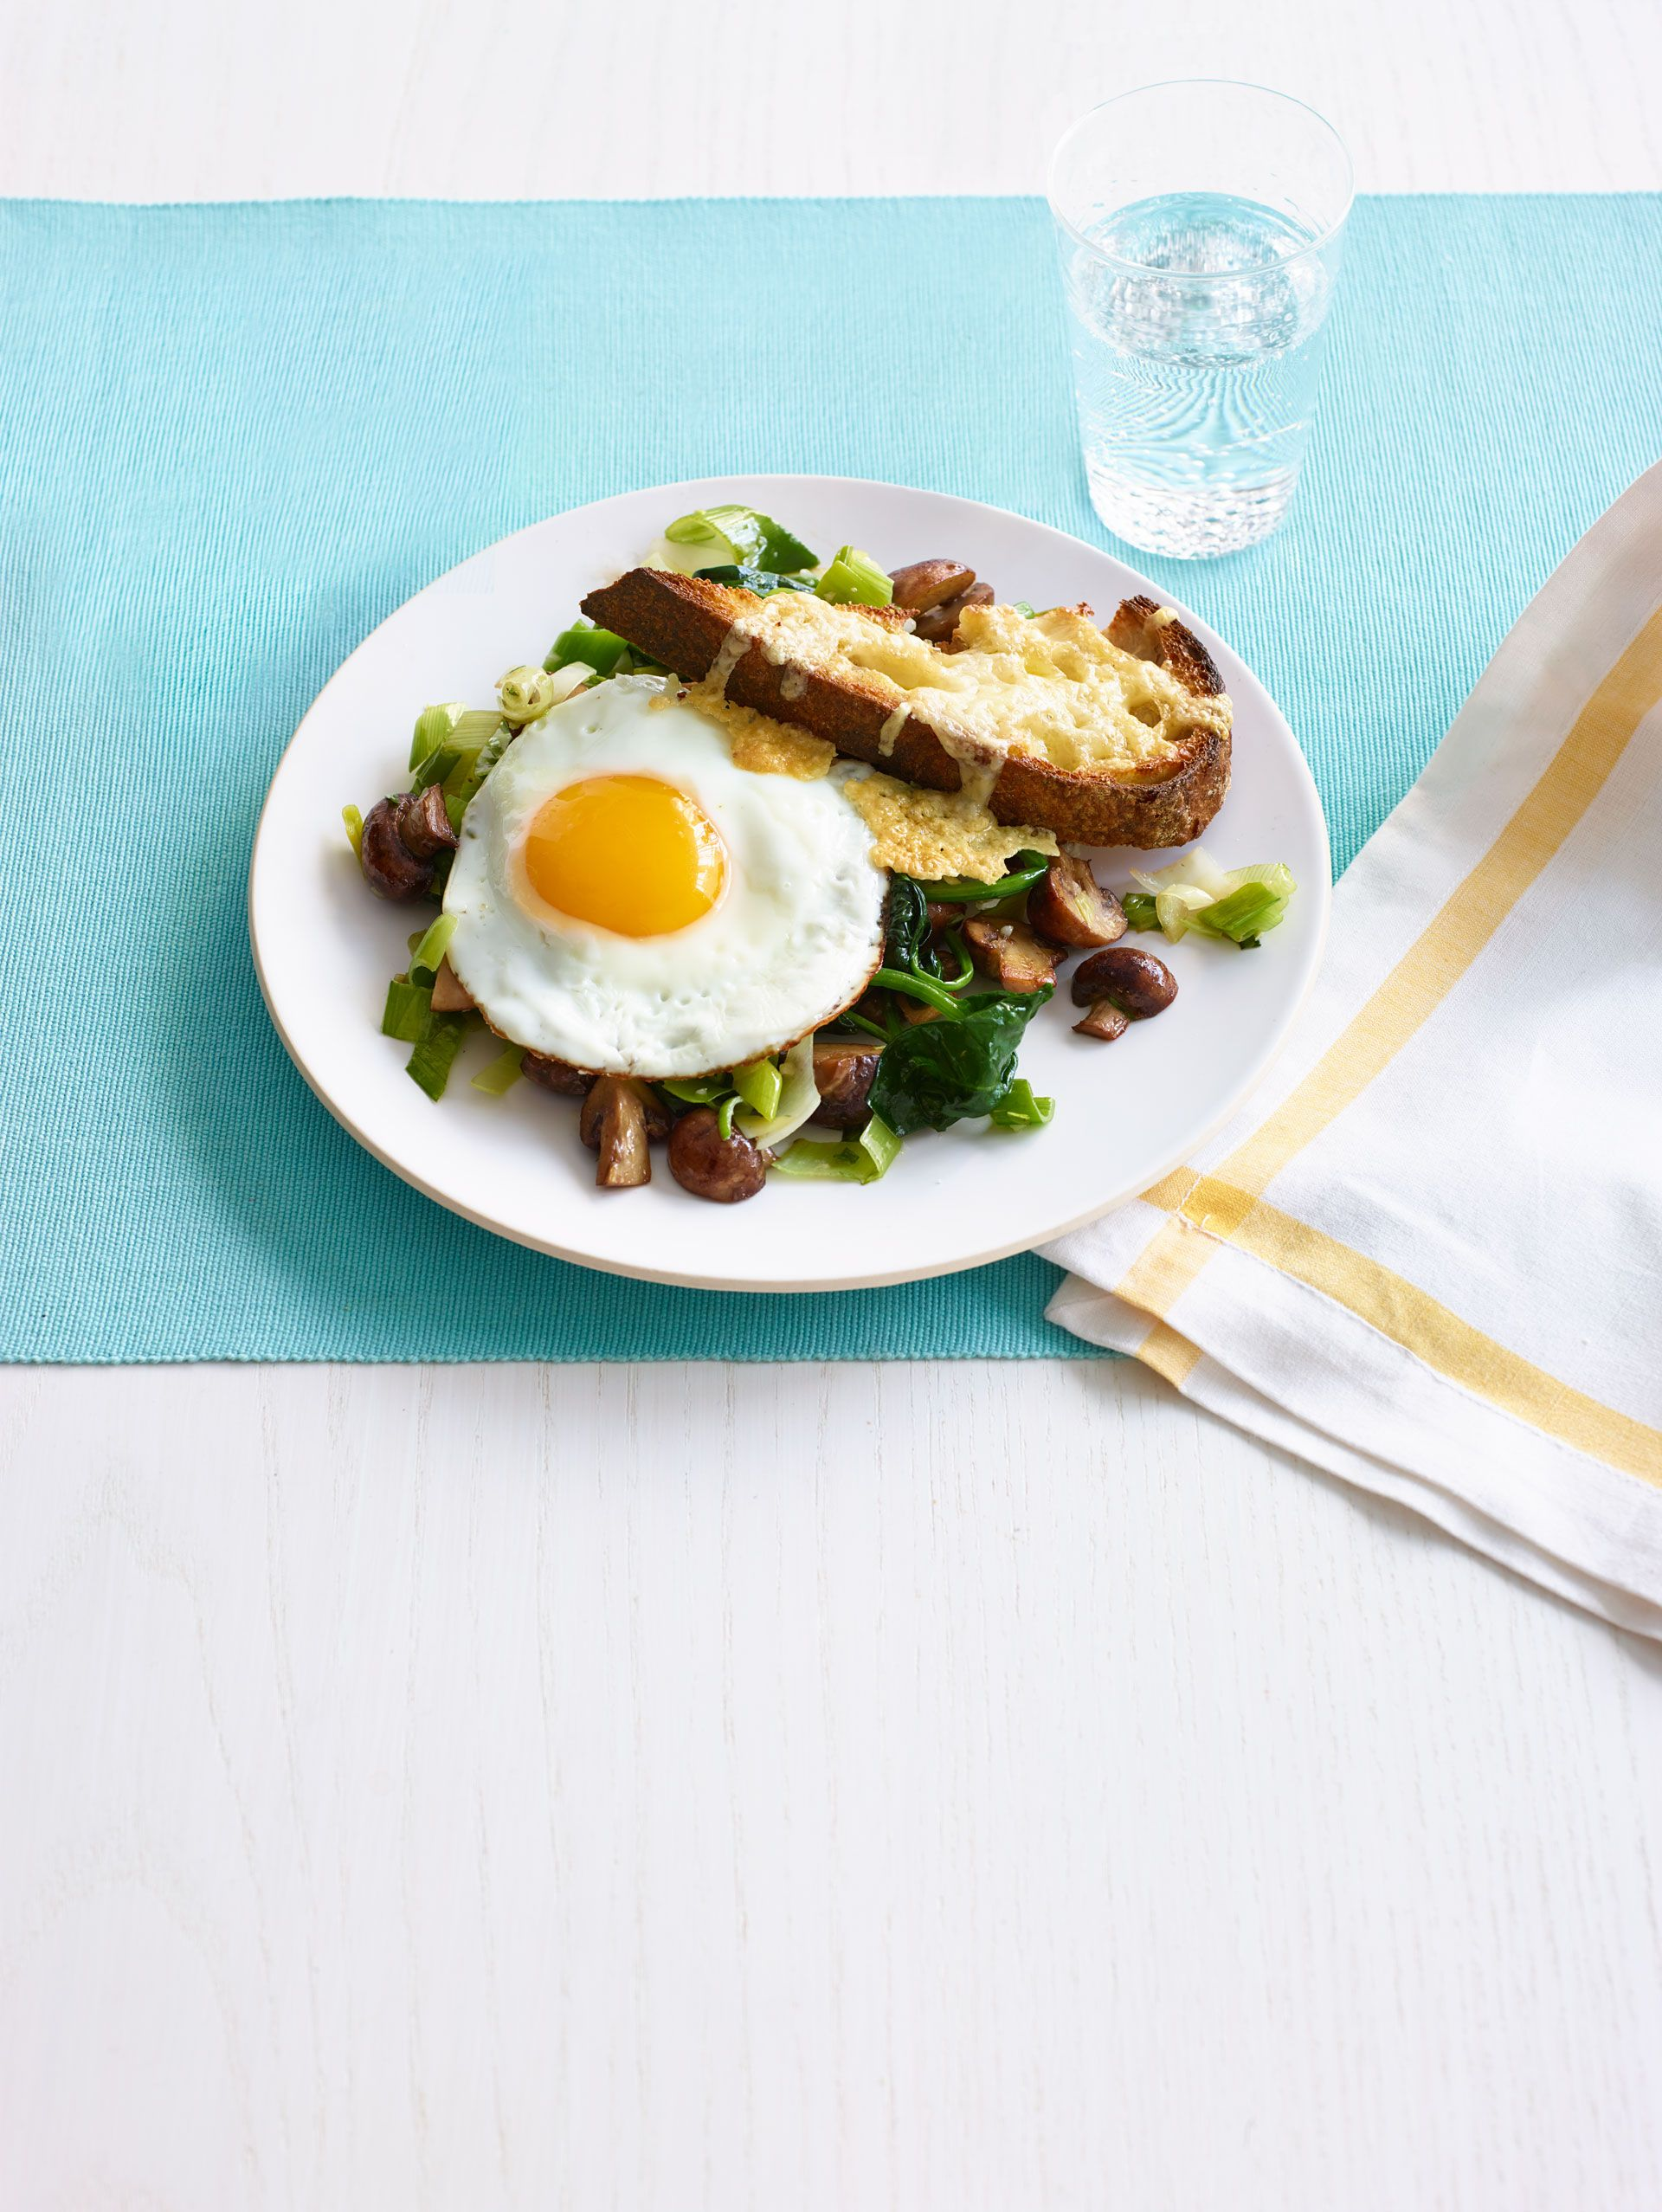 Leeks and Mushrooms on Cheesy Toasts with Fried Eggs